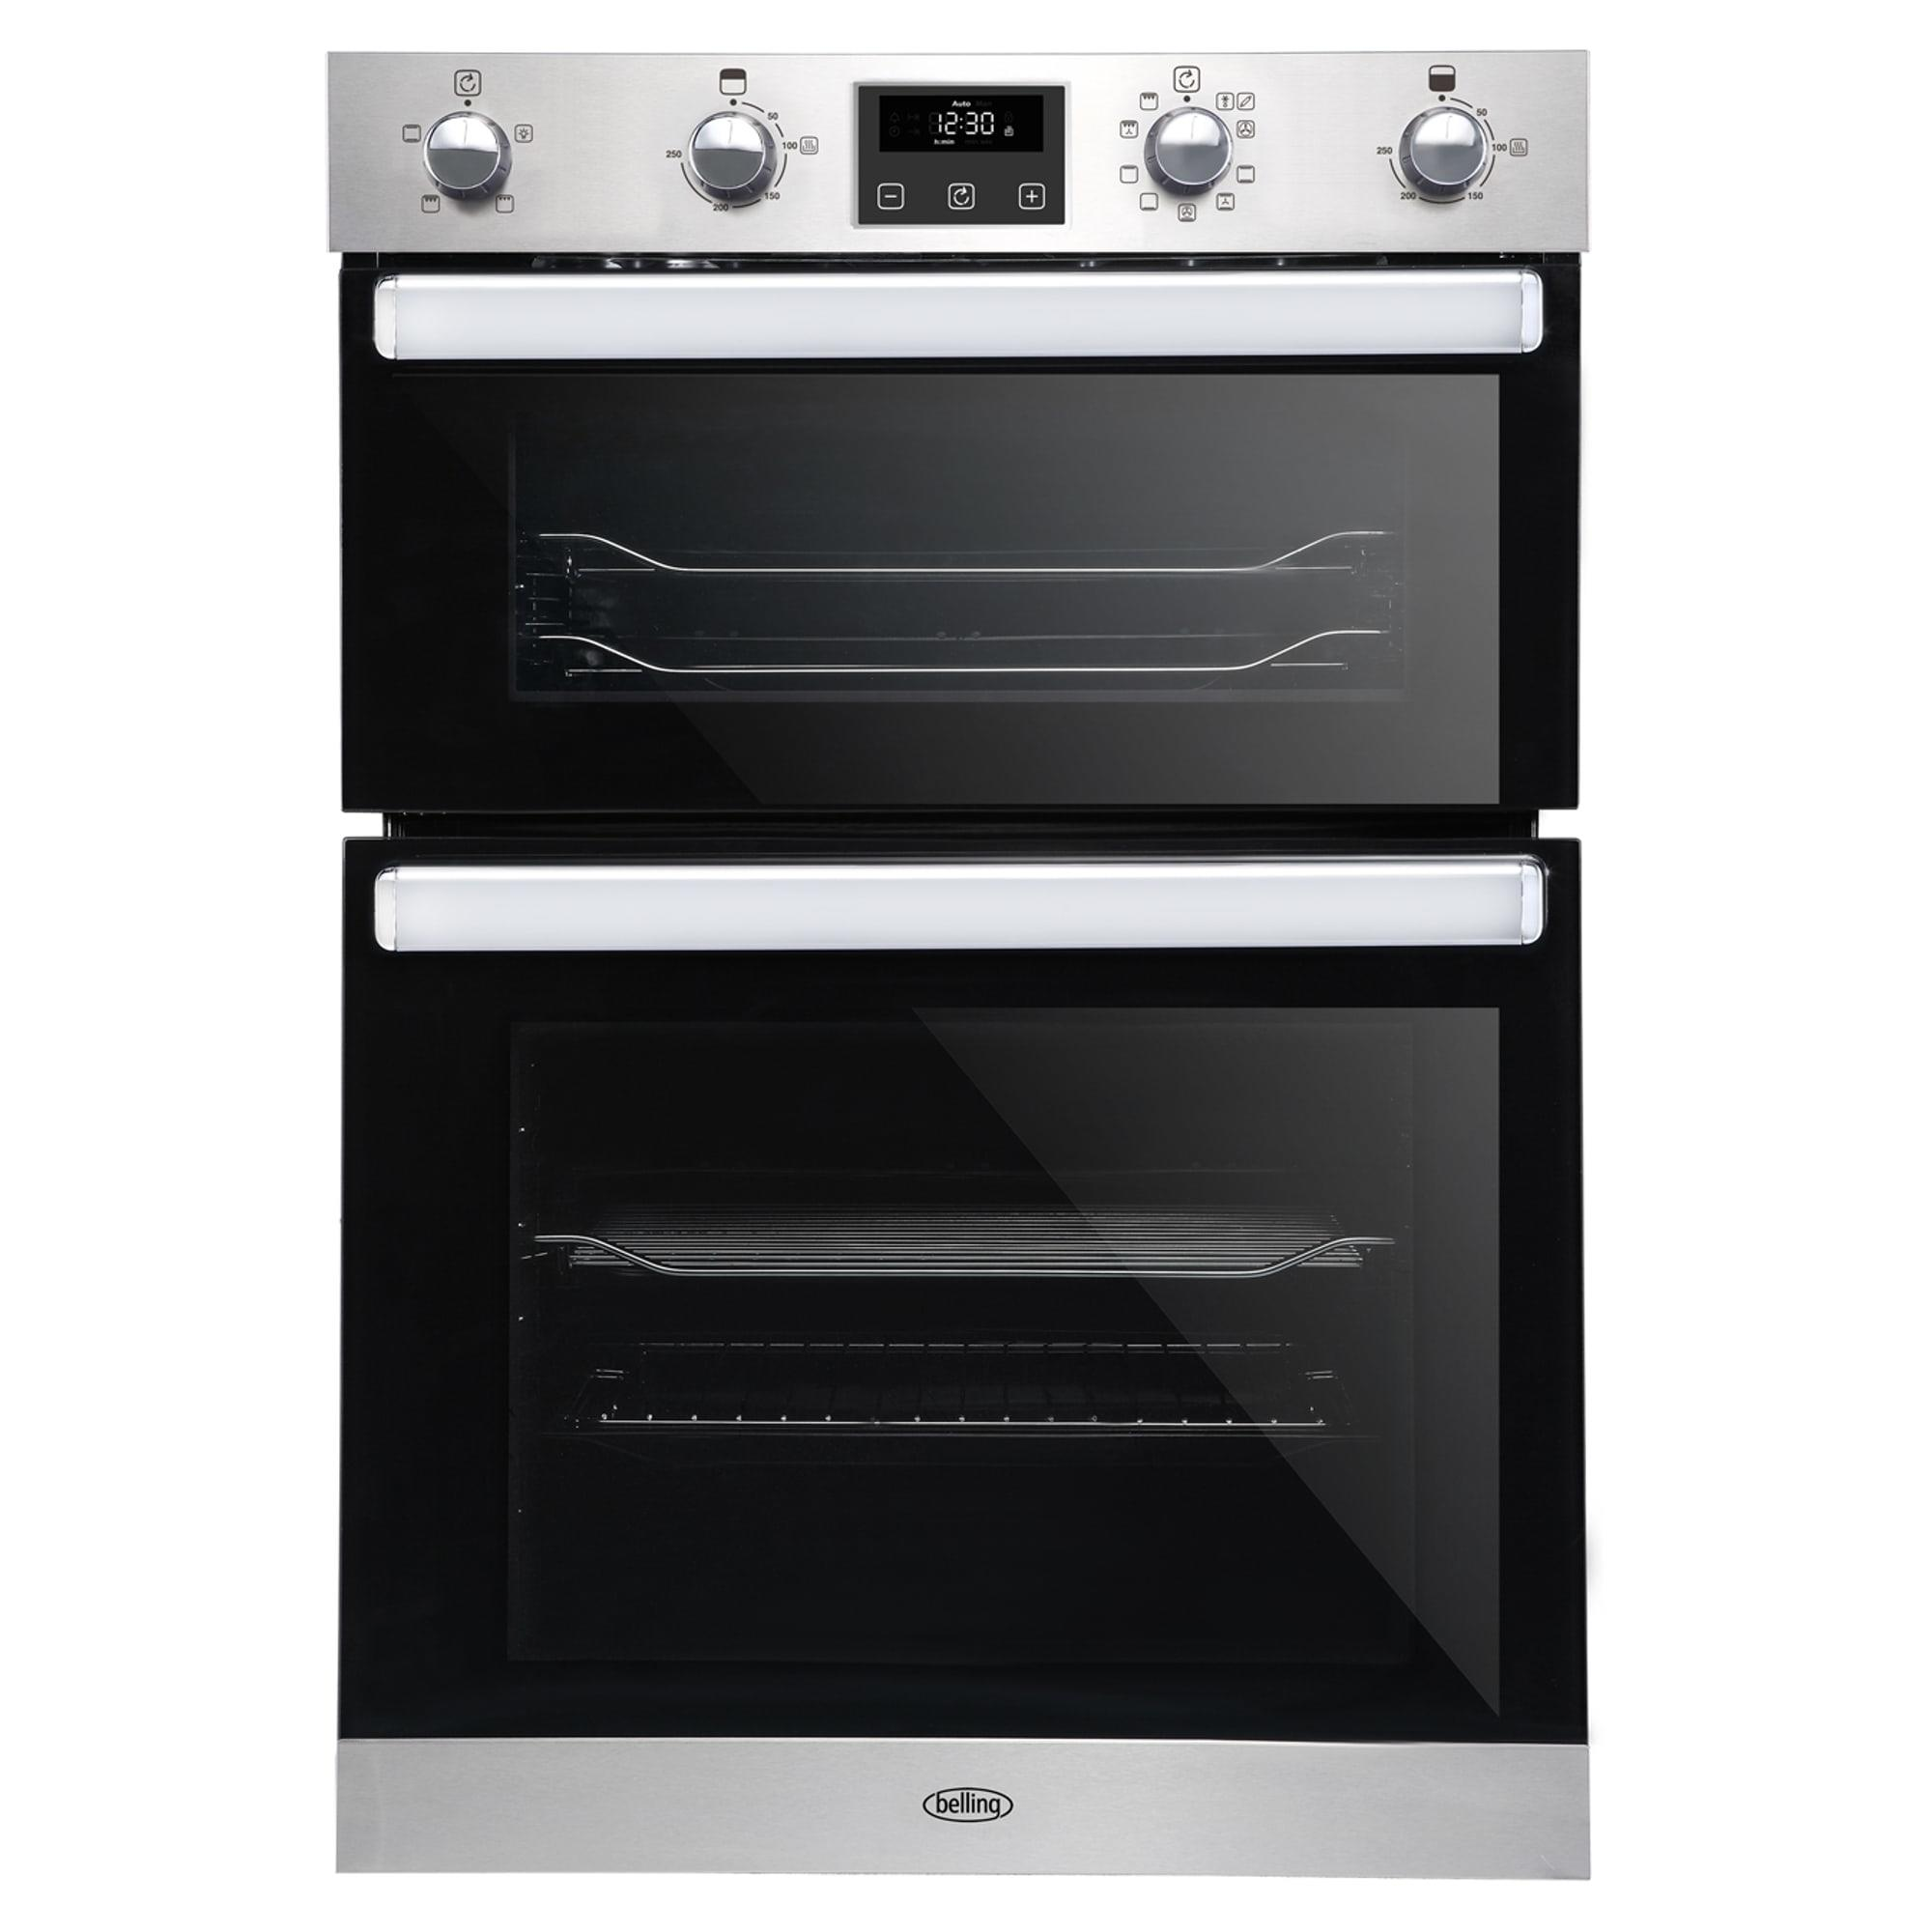 Belling BI902FPSTA Built-In Electric Double Oven